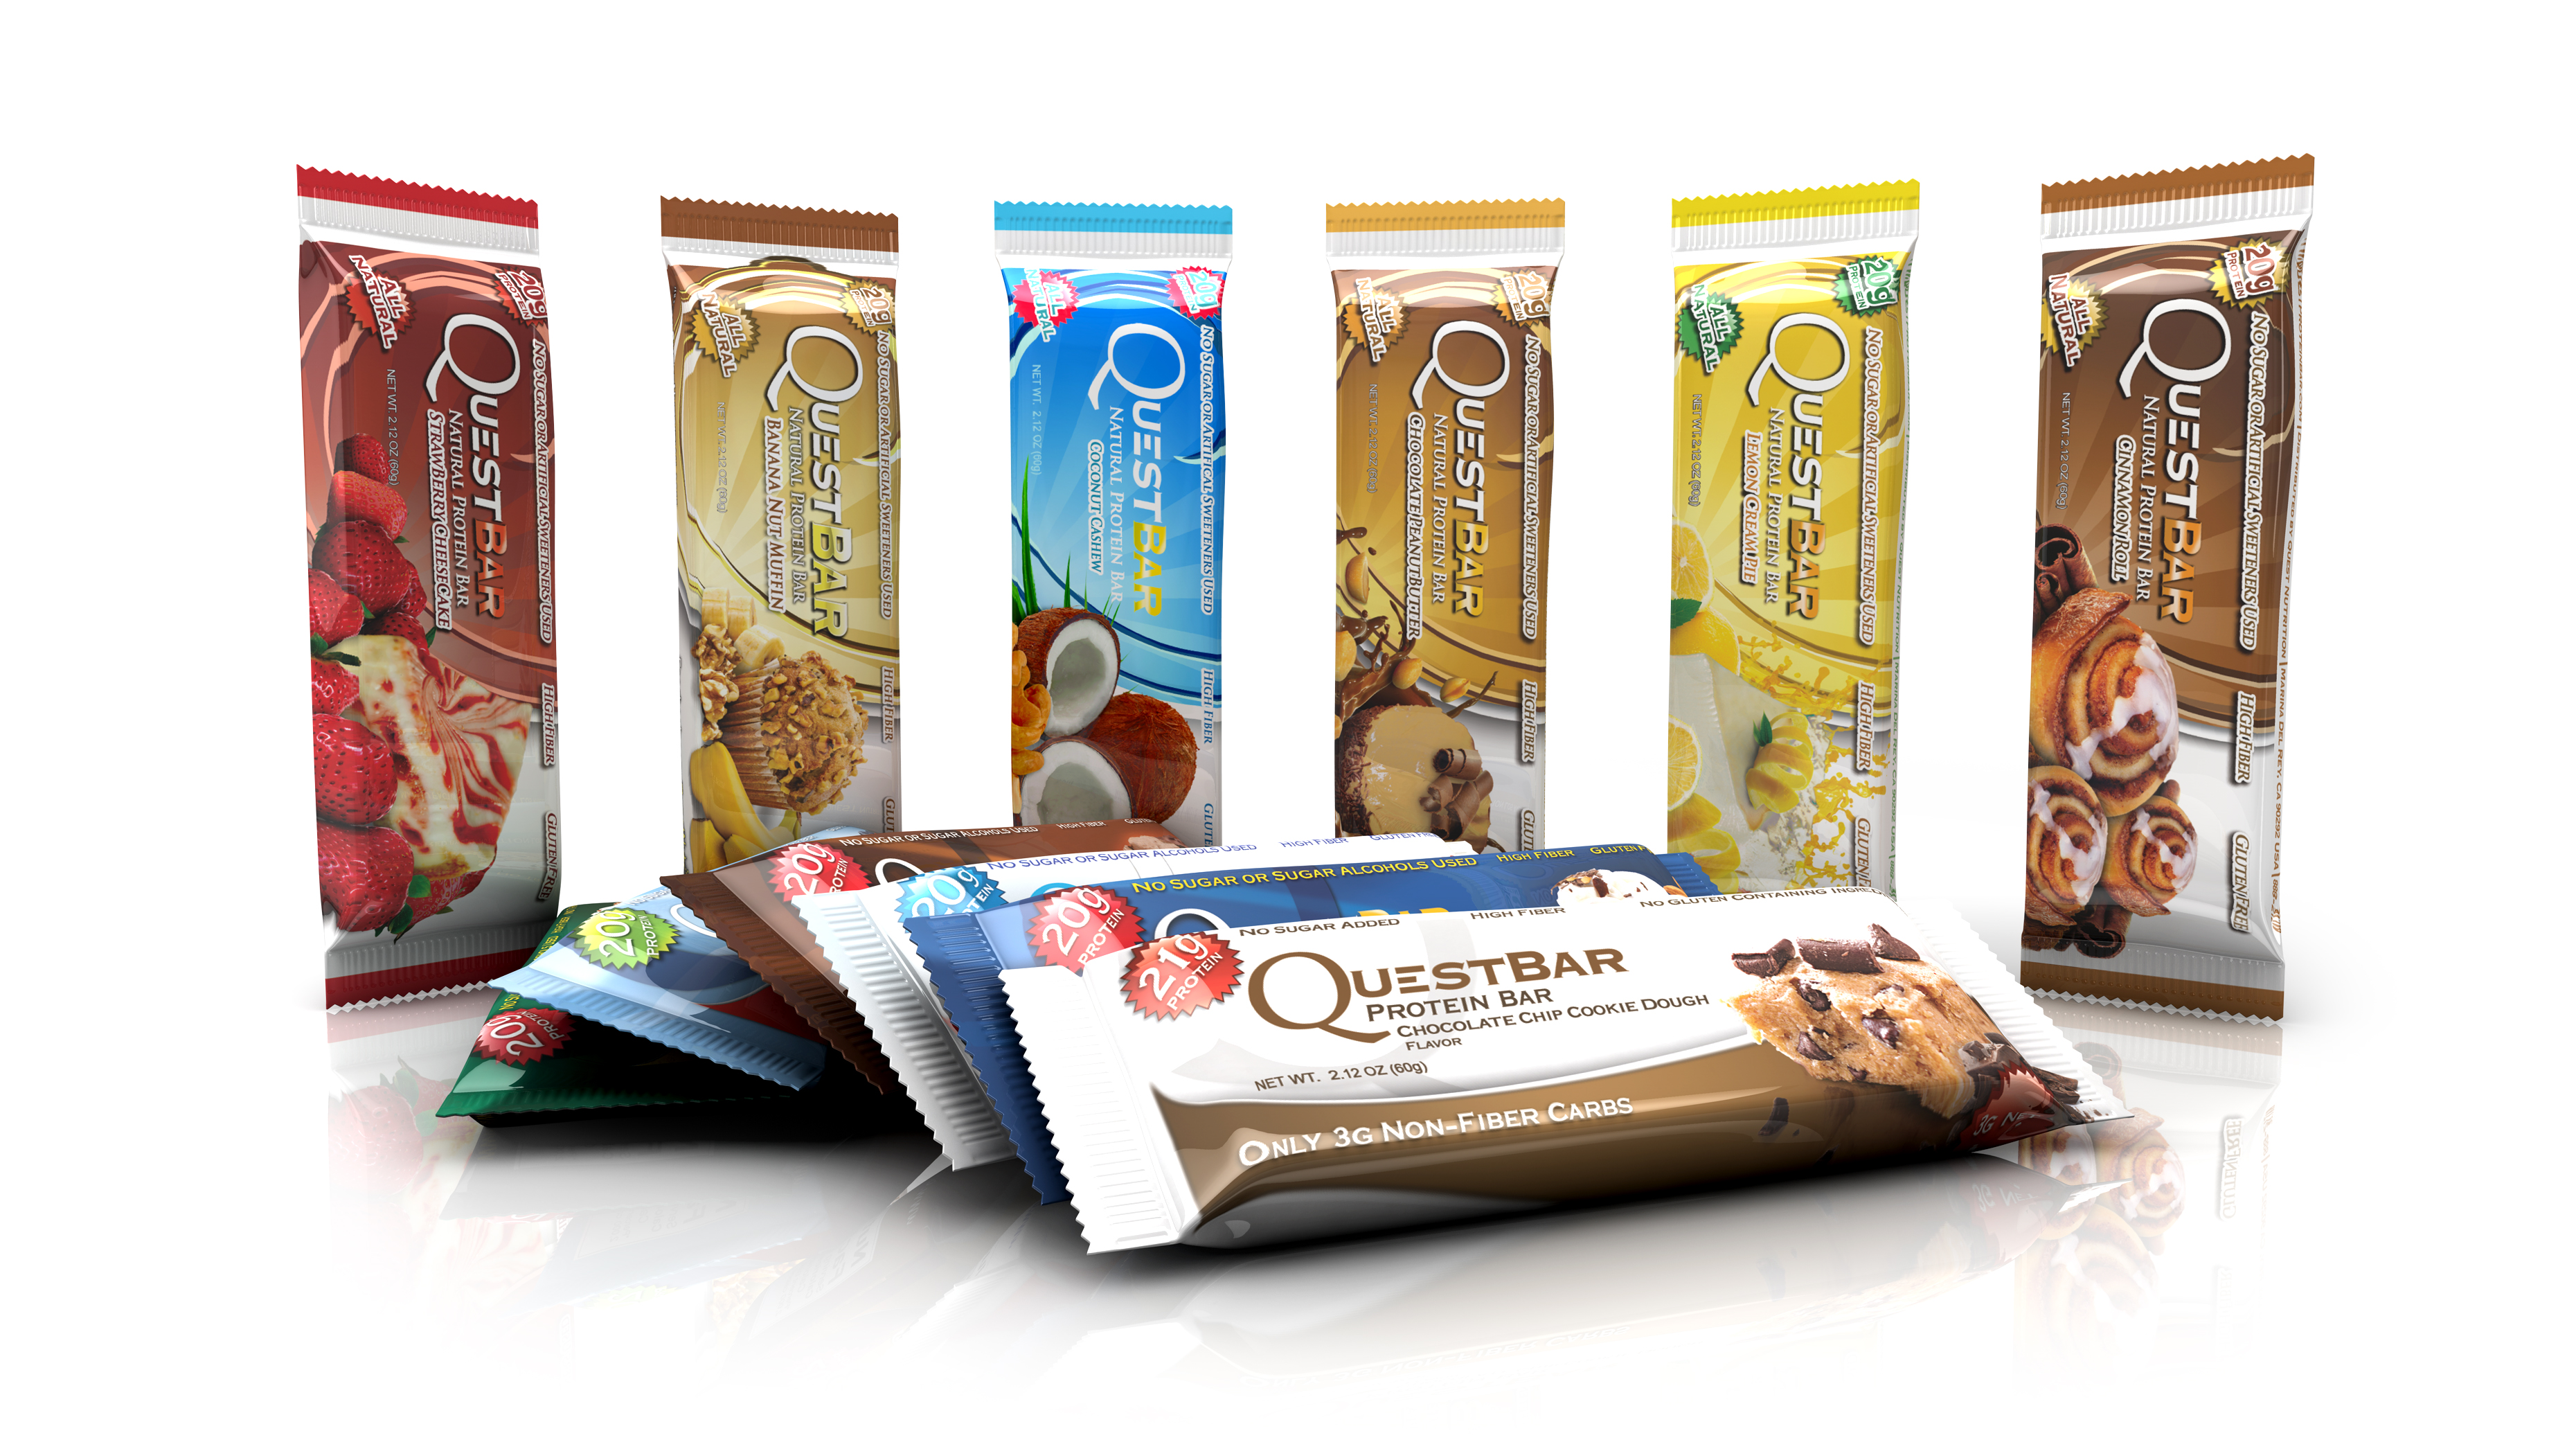 Anatomy Of A Quest Bar And Why I Would Never Eat One